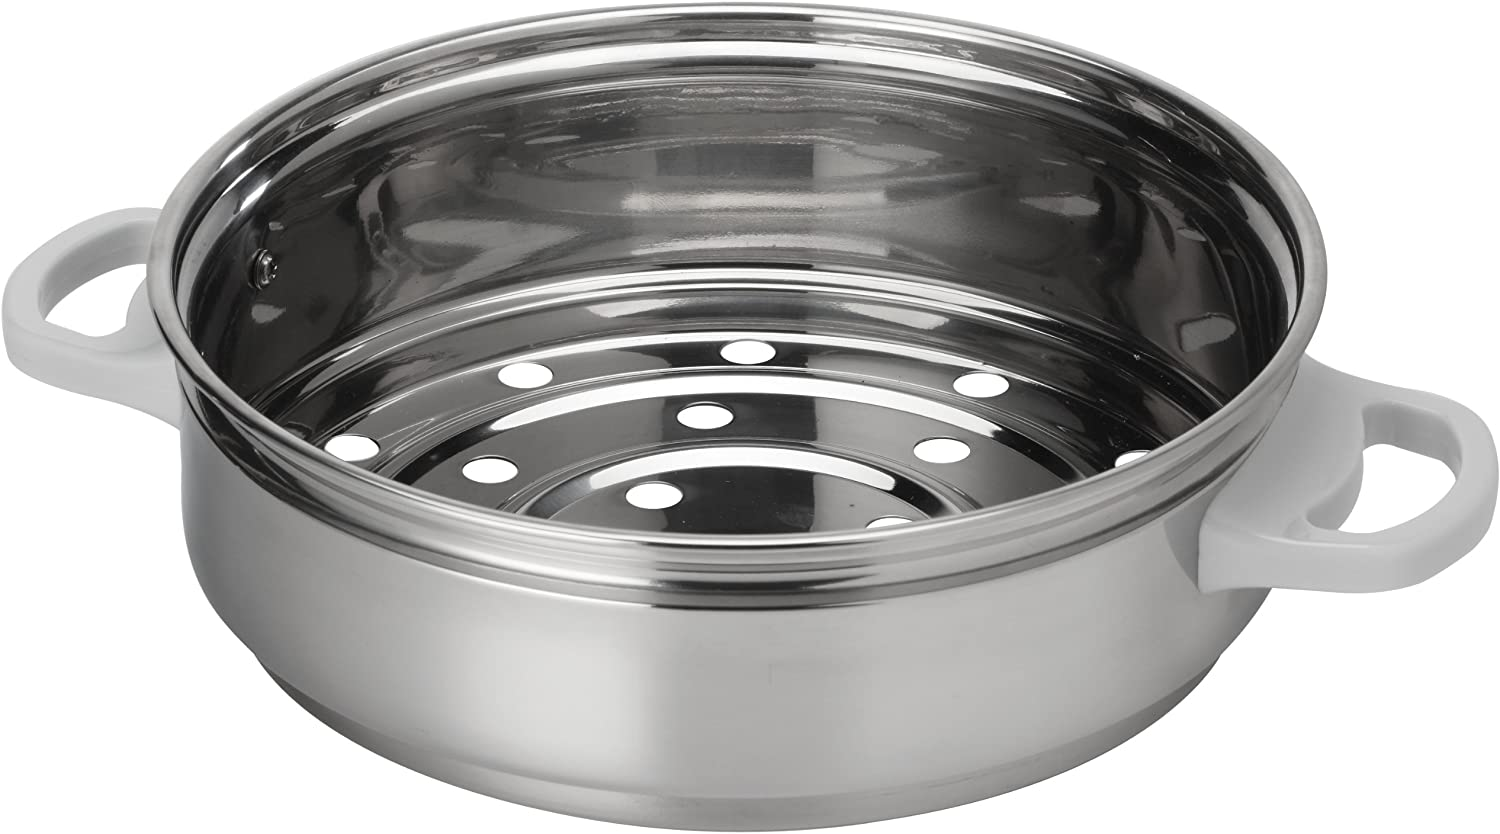 Aroma Housewares RS-03 Select Stainless Steam Tray for 6-Cup Rice Cooker, 3